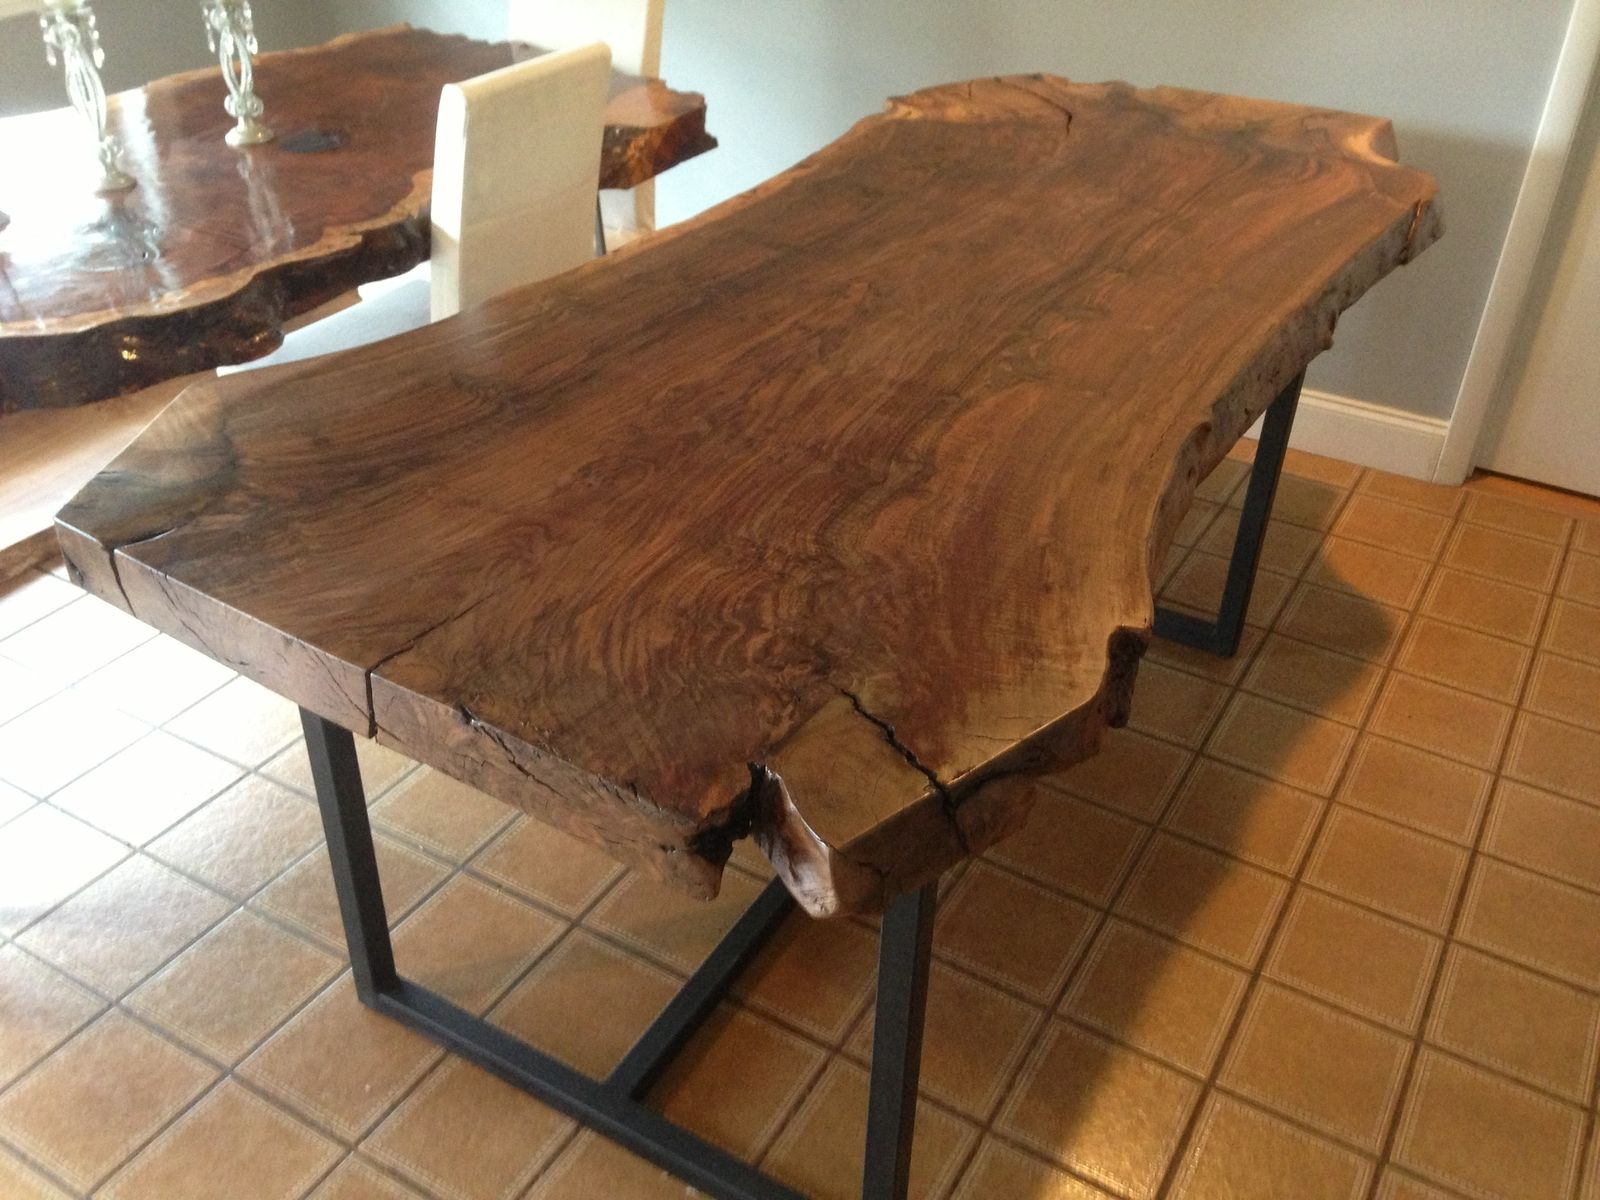 handmade live edge claro walnut dining table by ozma. Black Bedroom Furniture Sets. Home Design Ideas